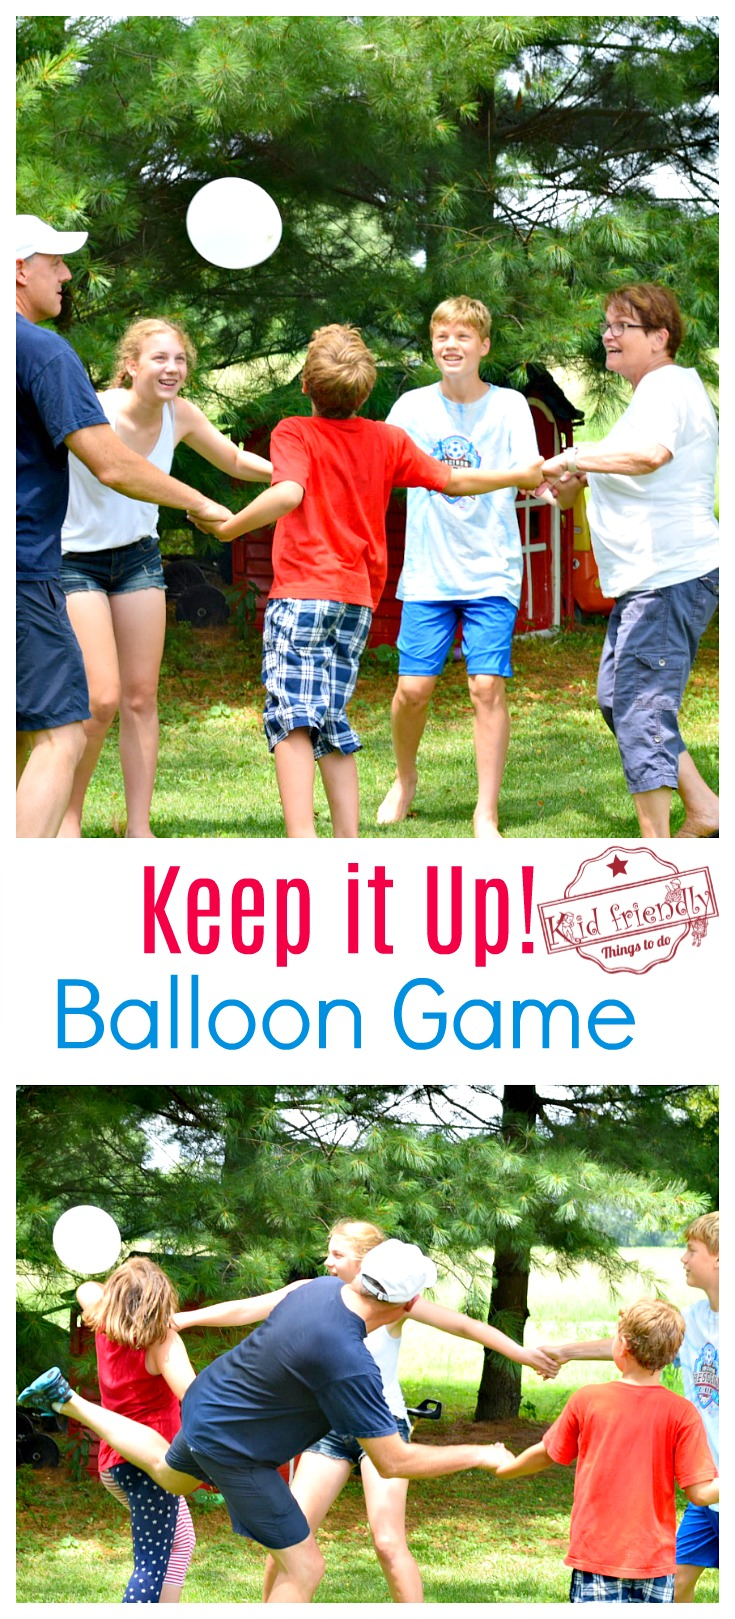 Just Keep it Up - A Fun Balloon Game for Kids, Teens and Adults to Play - perfect for indoor or outdoor. Great party game - www.kidfriendlythingstodo.com